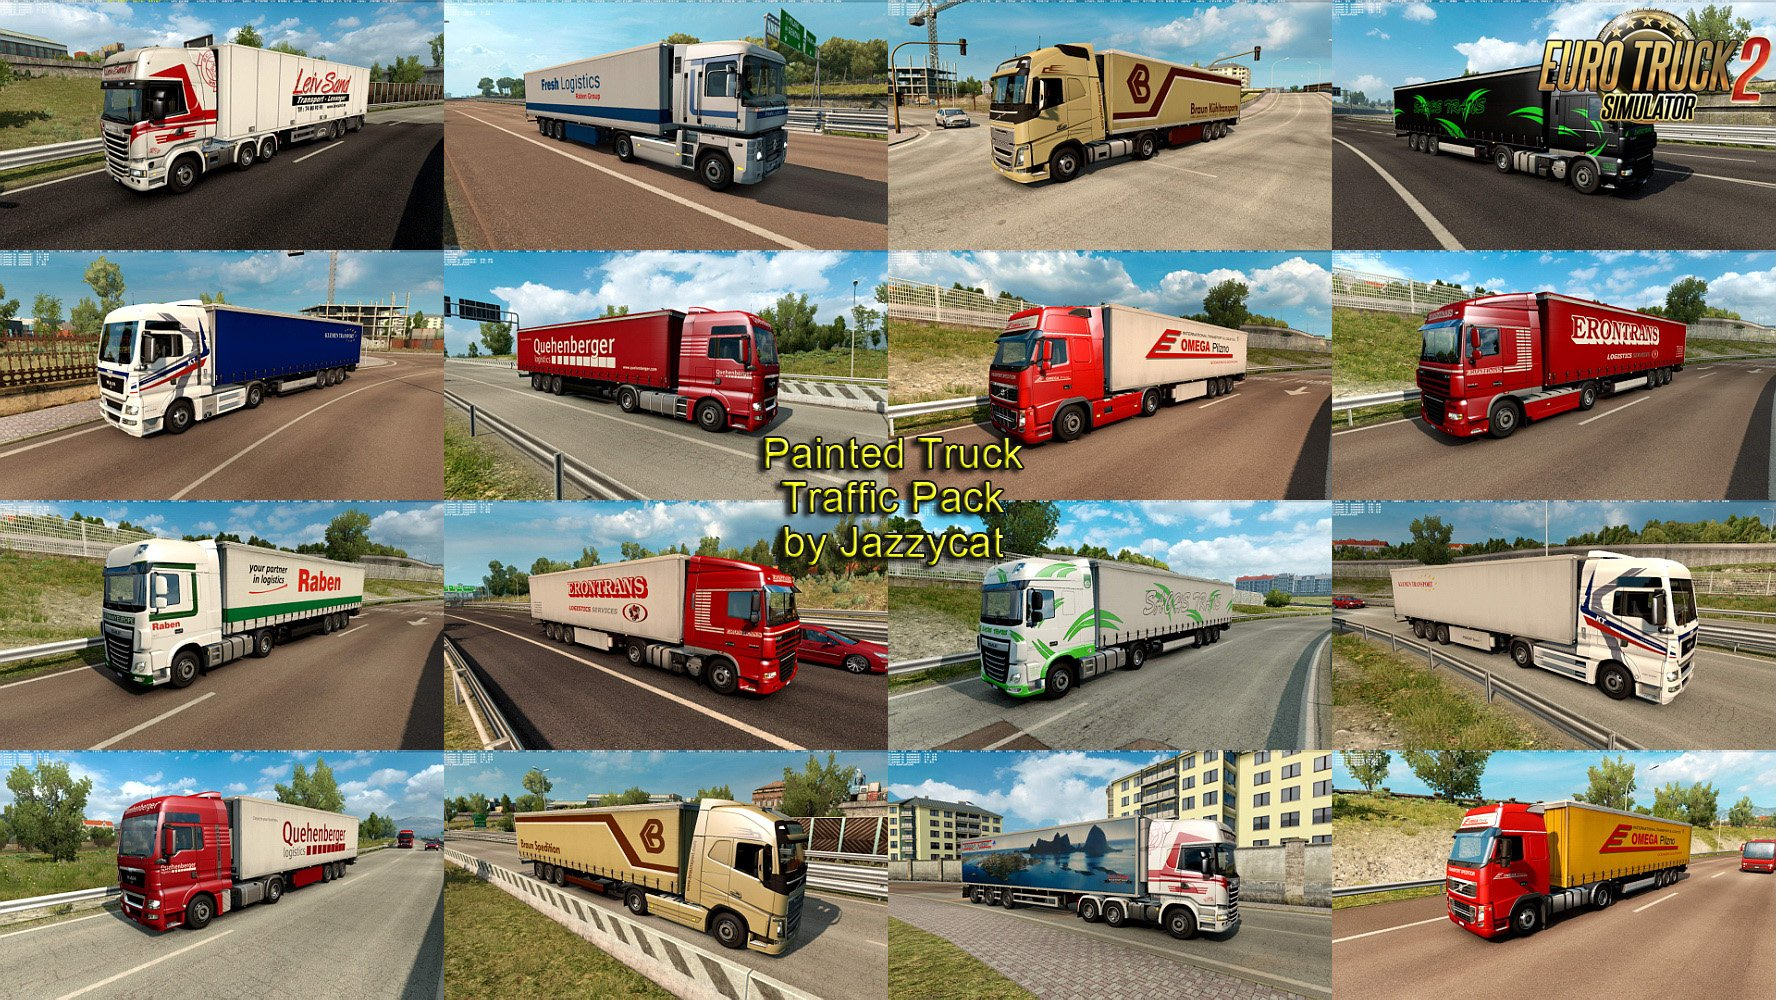 Painted Truck Traffic Pack v5.1.1 by Jazzycat